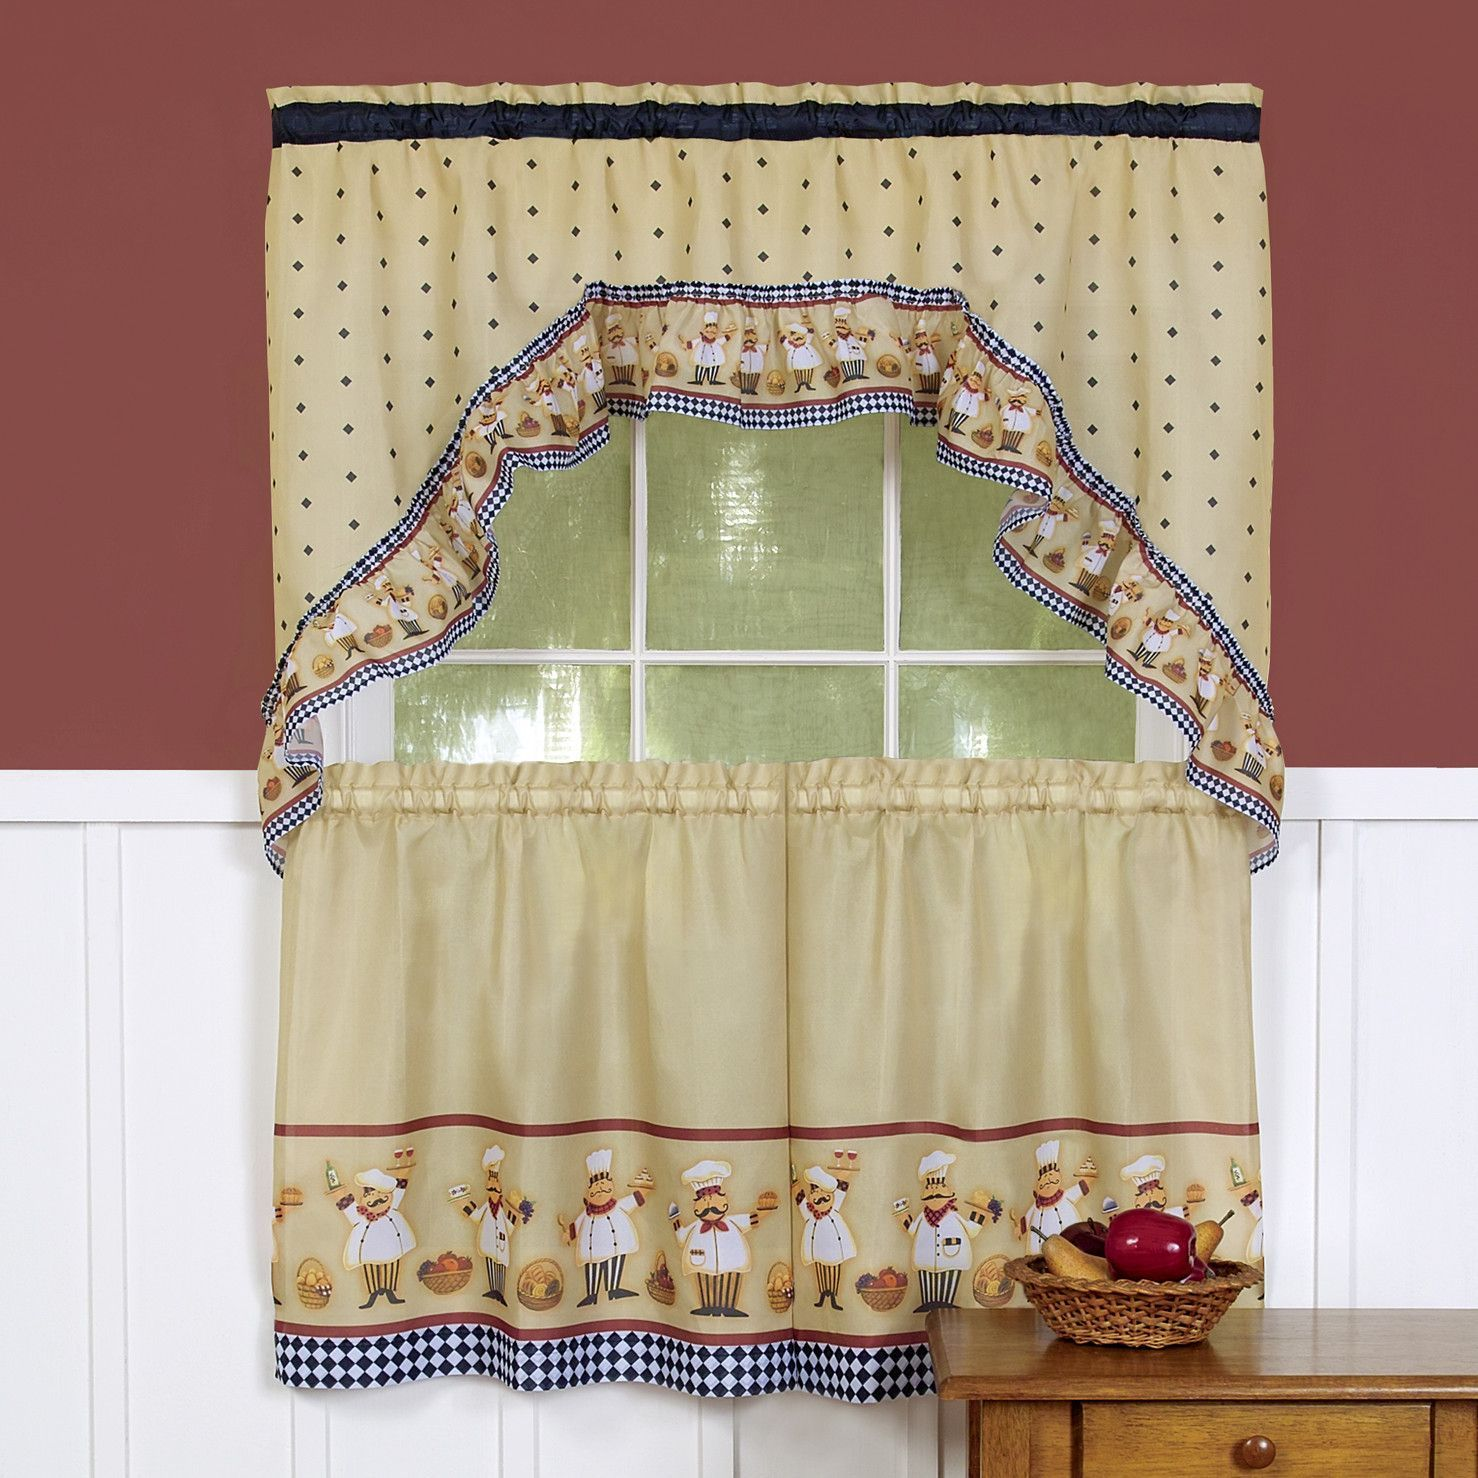 Cucina valance and tier set decor ideas pinterest cucina and